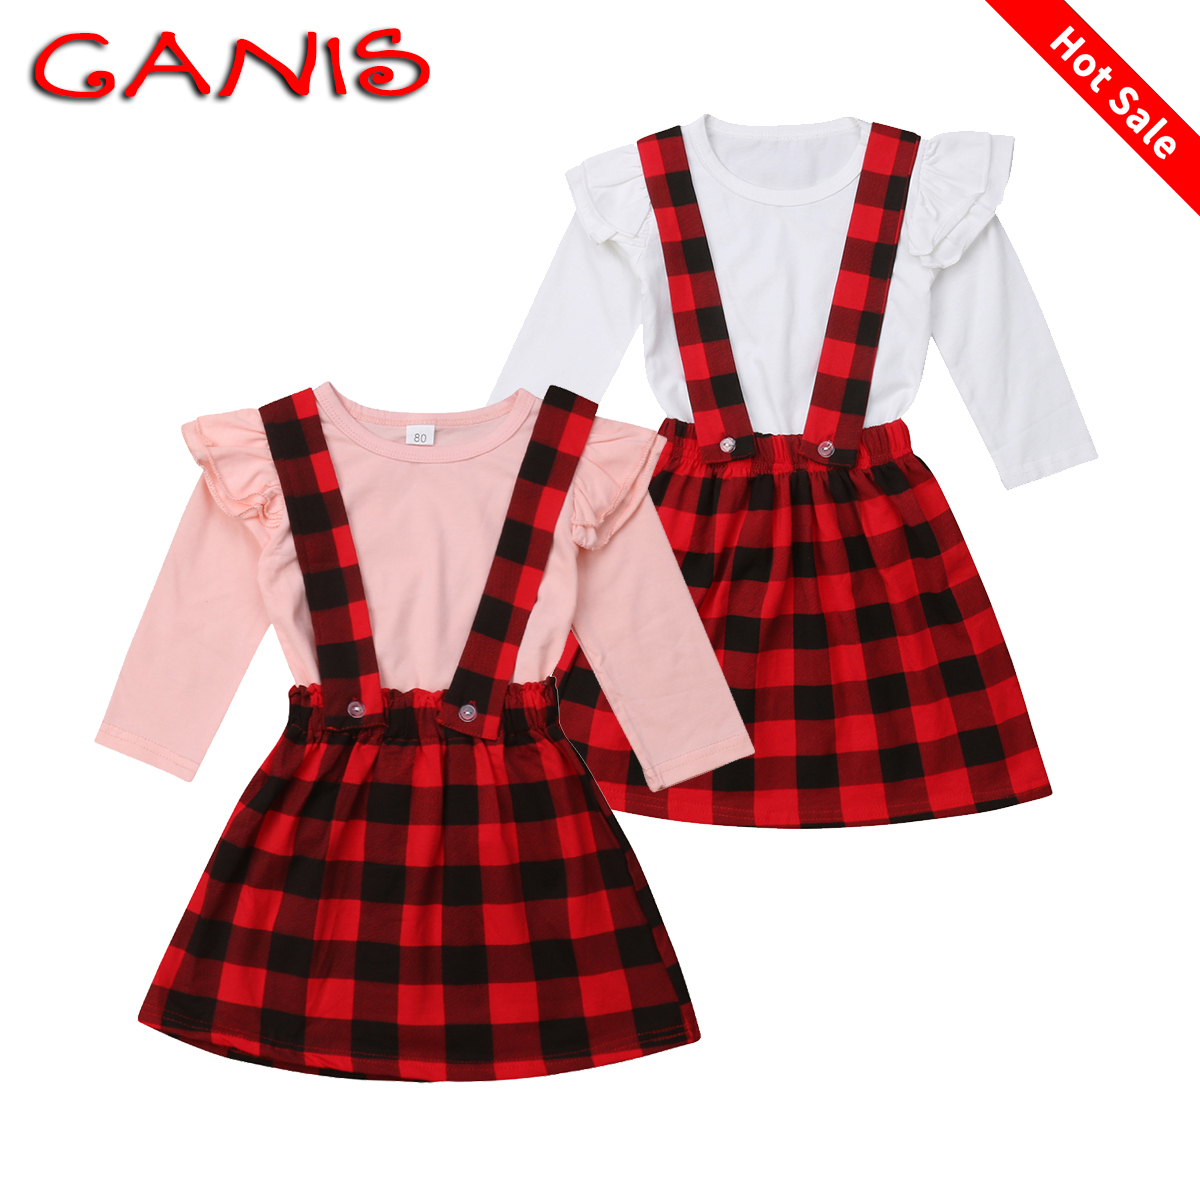 f34f95b731aa Details about Toddler Kids Baby Girls Christmas Tops T-shirt Skirts Dress  Outfits Clothes Set